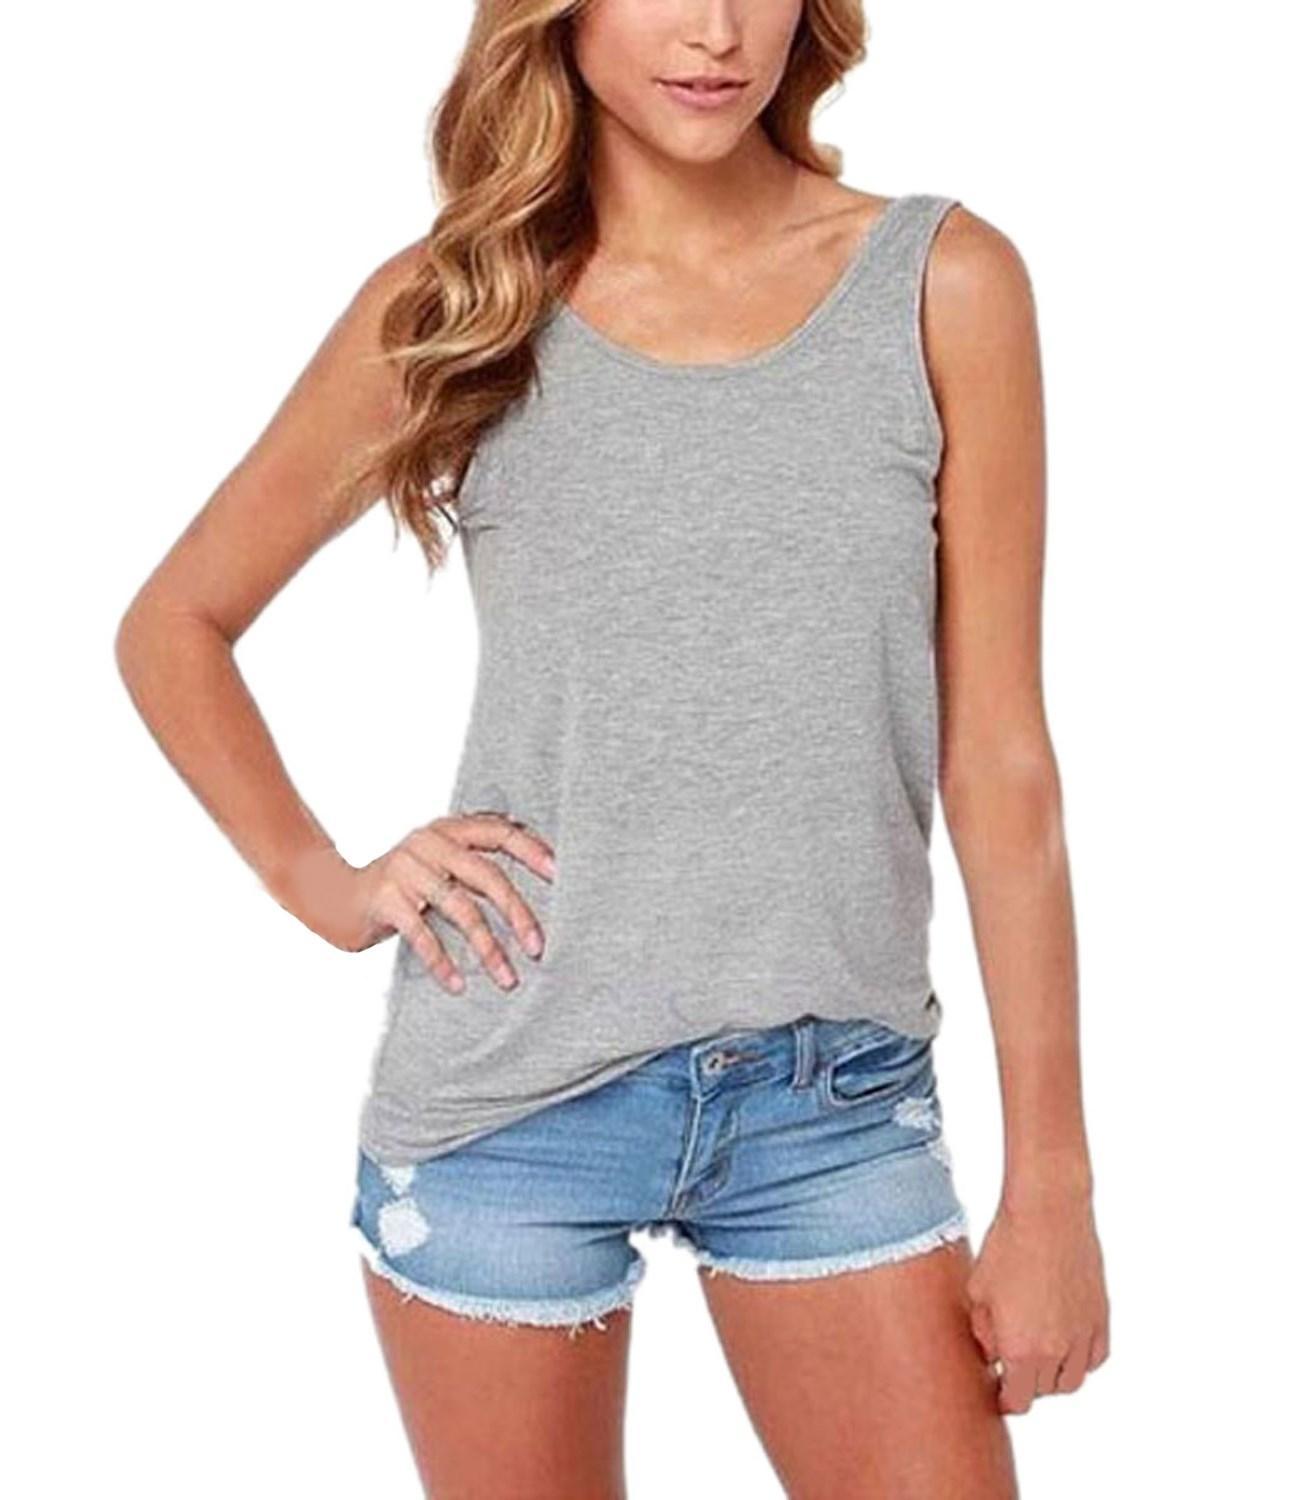 Popular Cheap Clothing Stores